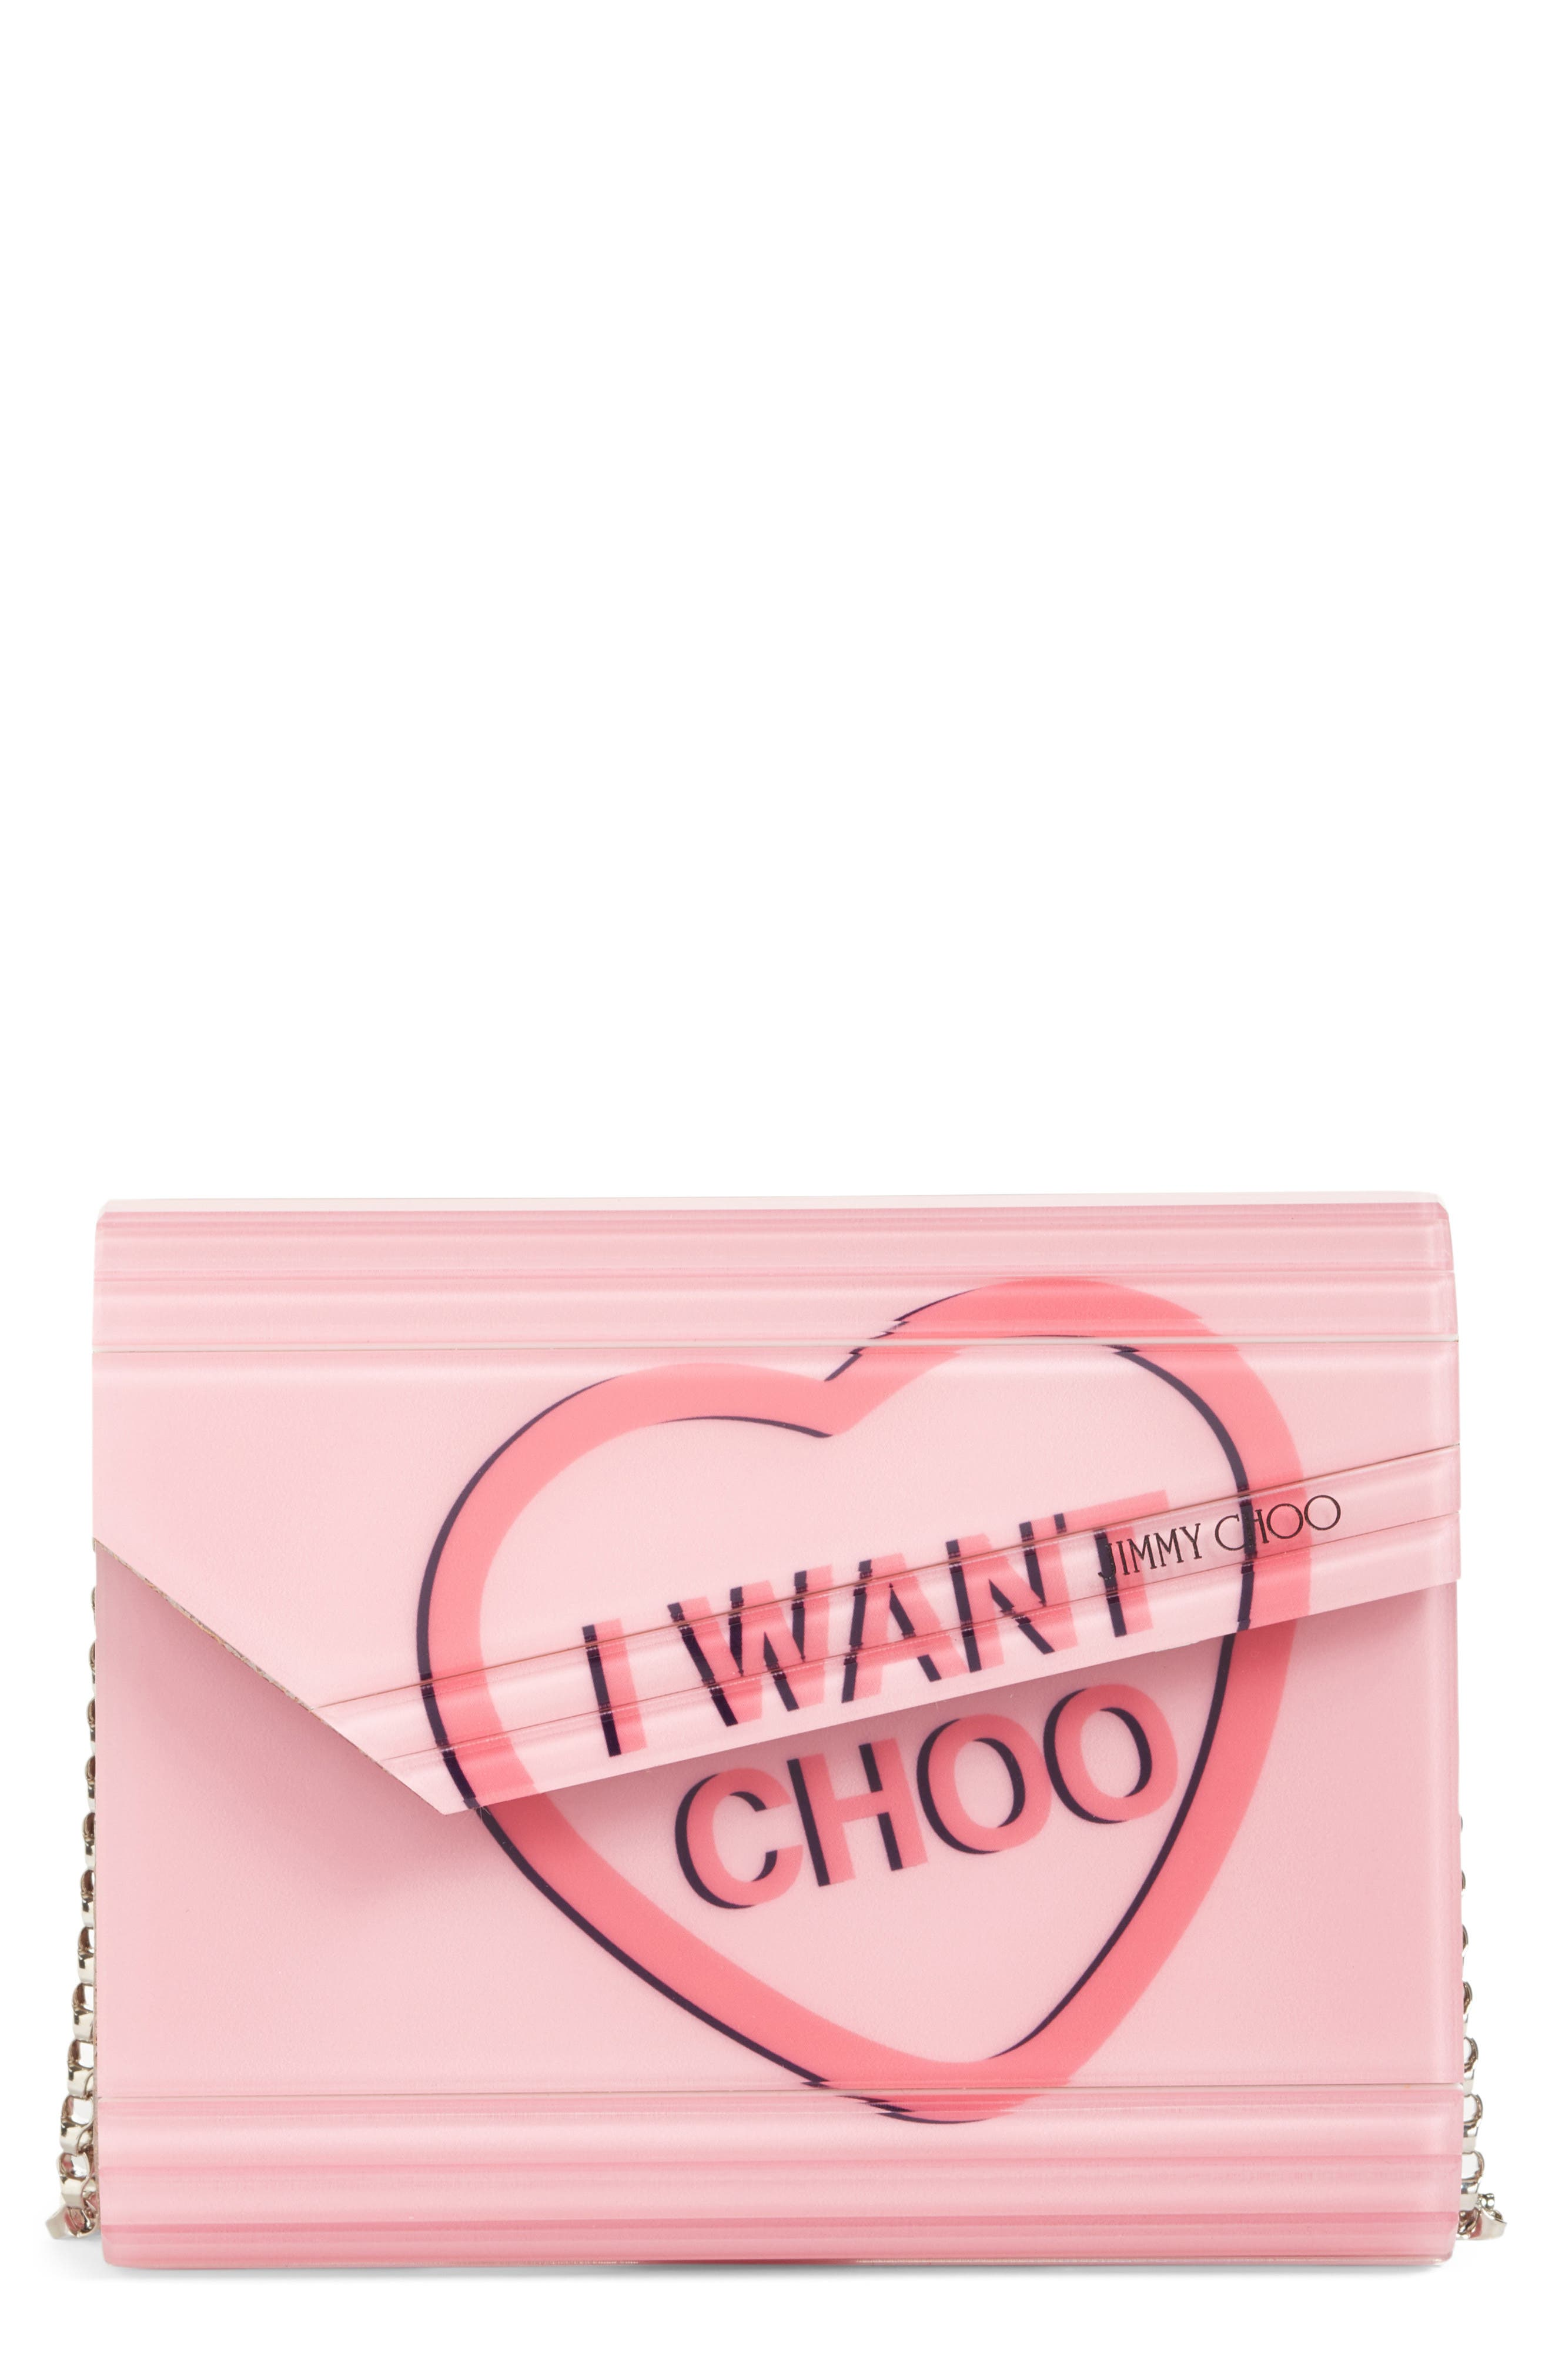 Alternate Image 1 Selected - Jimmy Choo Candy Love Heart Clutch